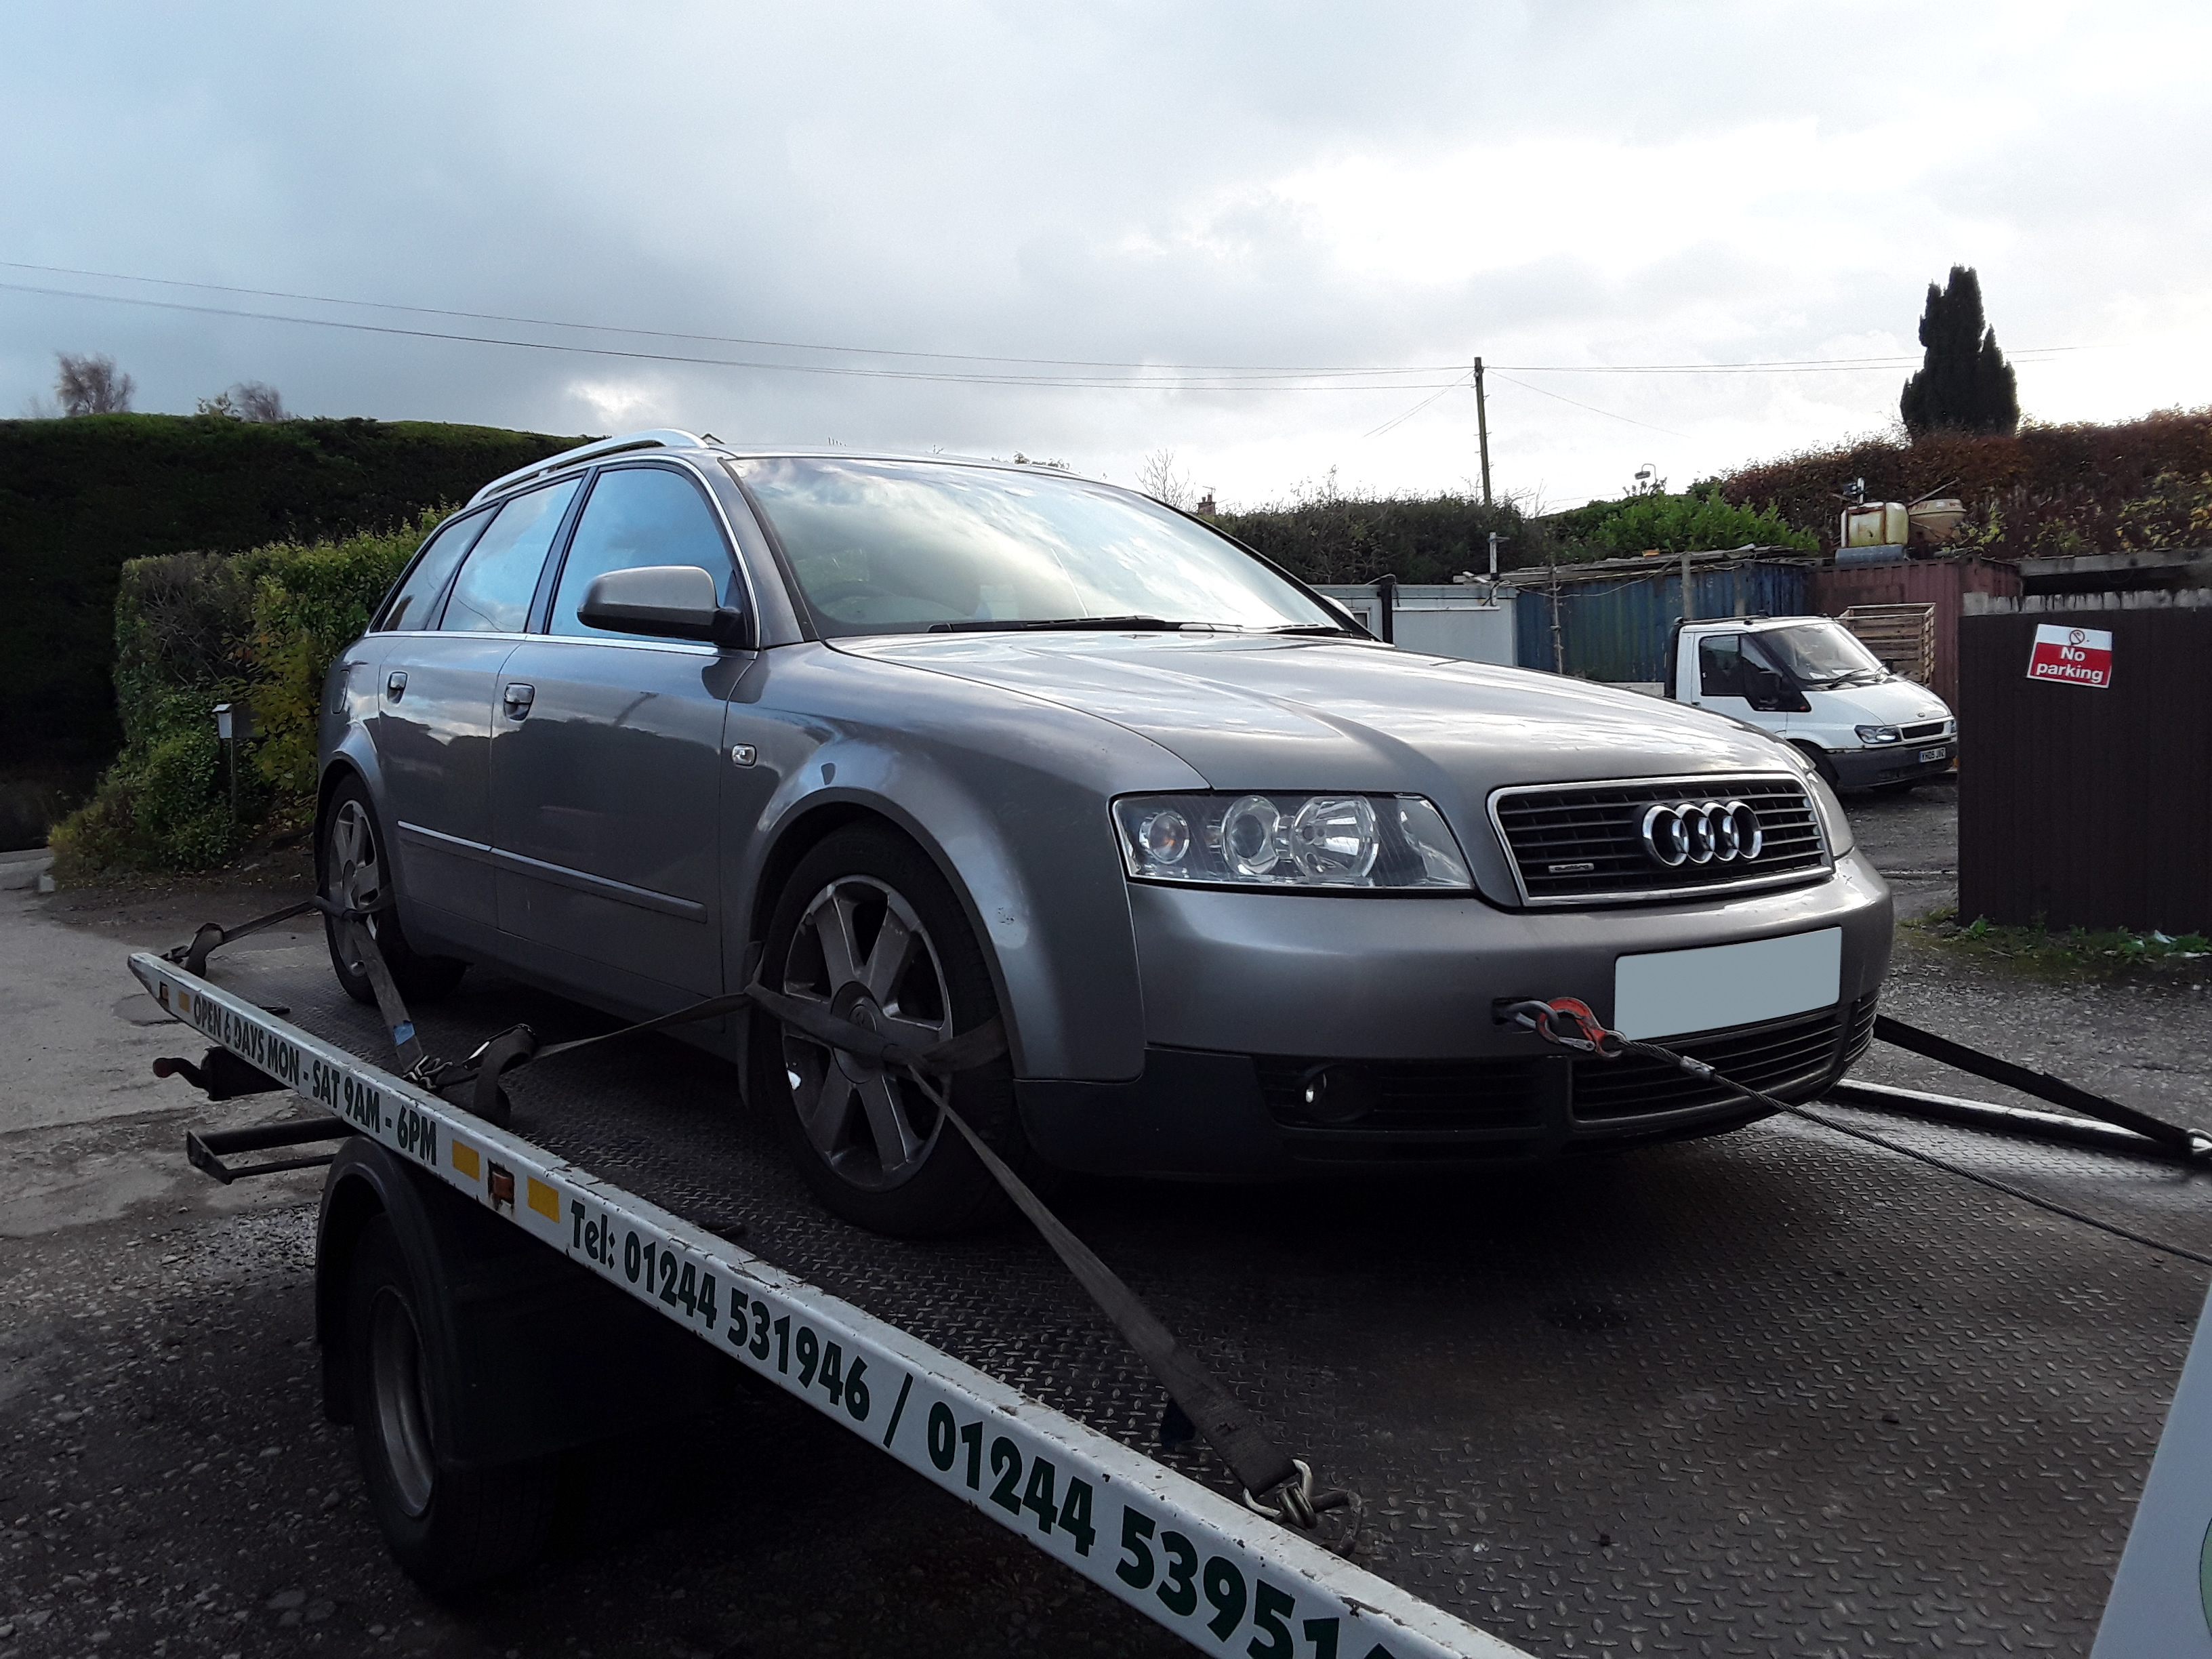 Audi A4 Used Car Parts Chester, Deeside North Wales3 | Jacksons Car Car Parts Uk Audi on mazda cars uk, skoda cars uk, honda cars uk, bmw cars uk, nissan cars uk, tesla cars uk, jaguar cars uk, mg cars uk, bristol cars uk, eagle cars uk, seat cars uk, morgan cars uk, dacia cars uk, ford cars uk, peugeot cars uk, renault cars uk, caterham cars uk, mclaren cars uk, dodge cars uk, citroen cars uk,